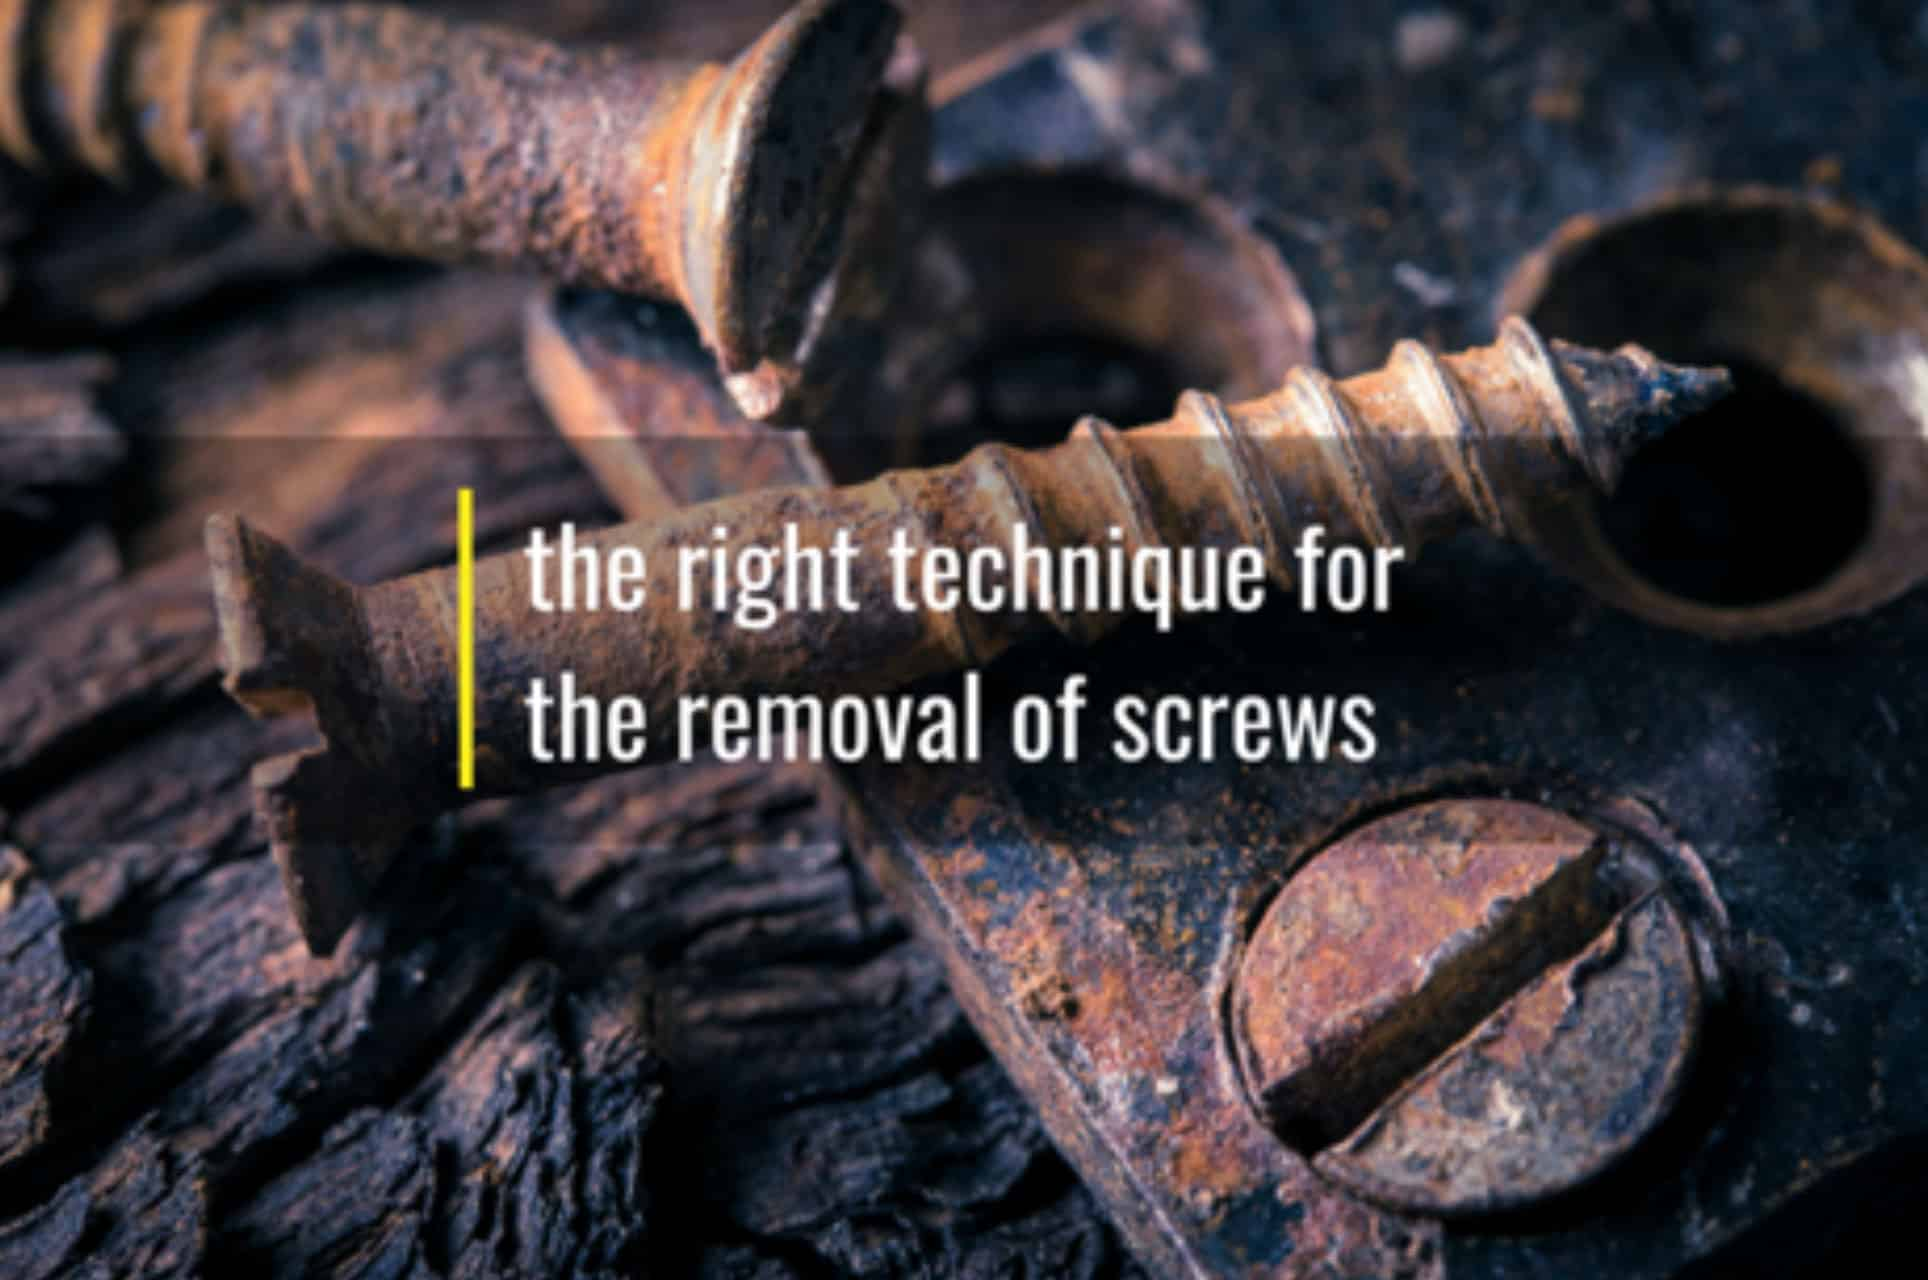 the right technique for removal of screws